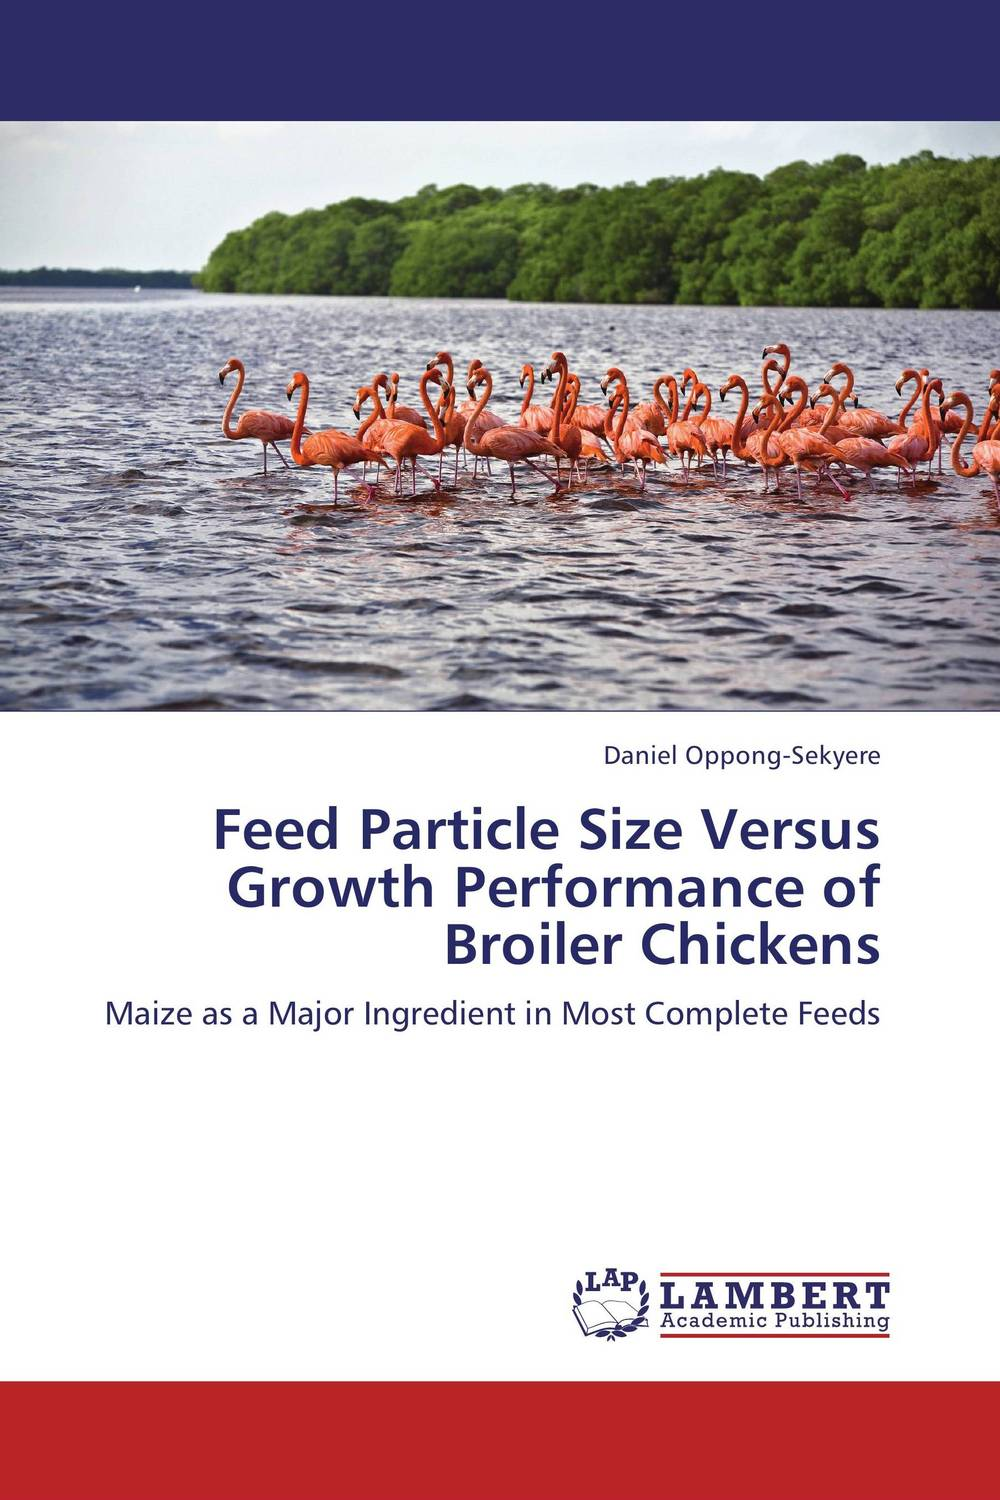 купить Feed Particle Size Versus Growth Performance of Broiler Chickens недорого